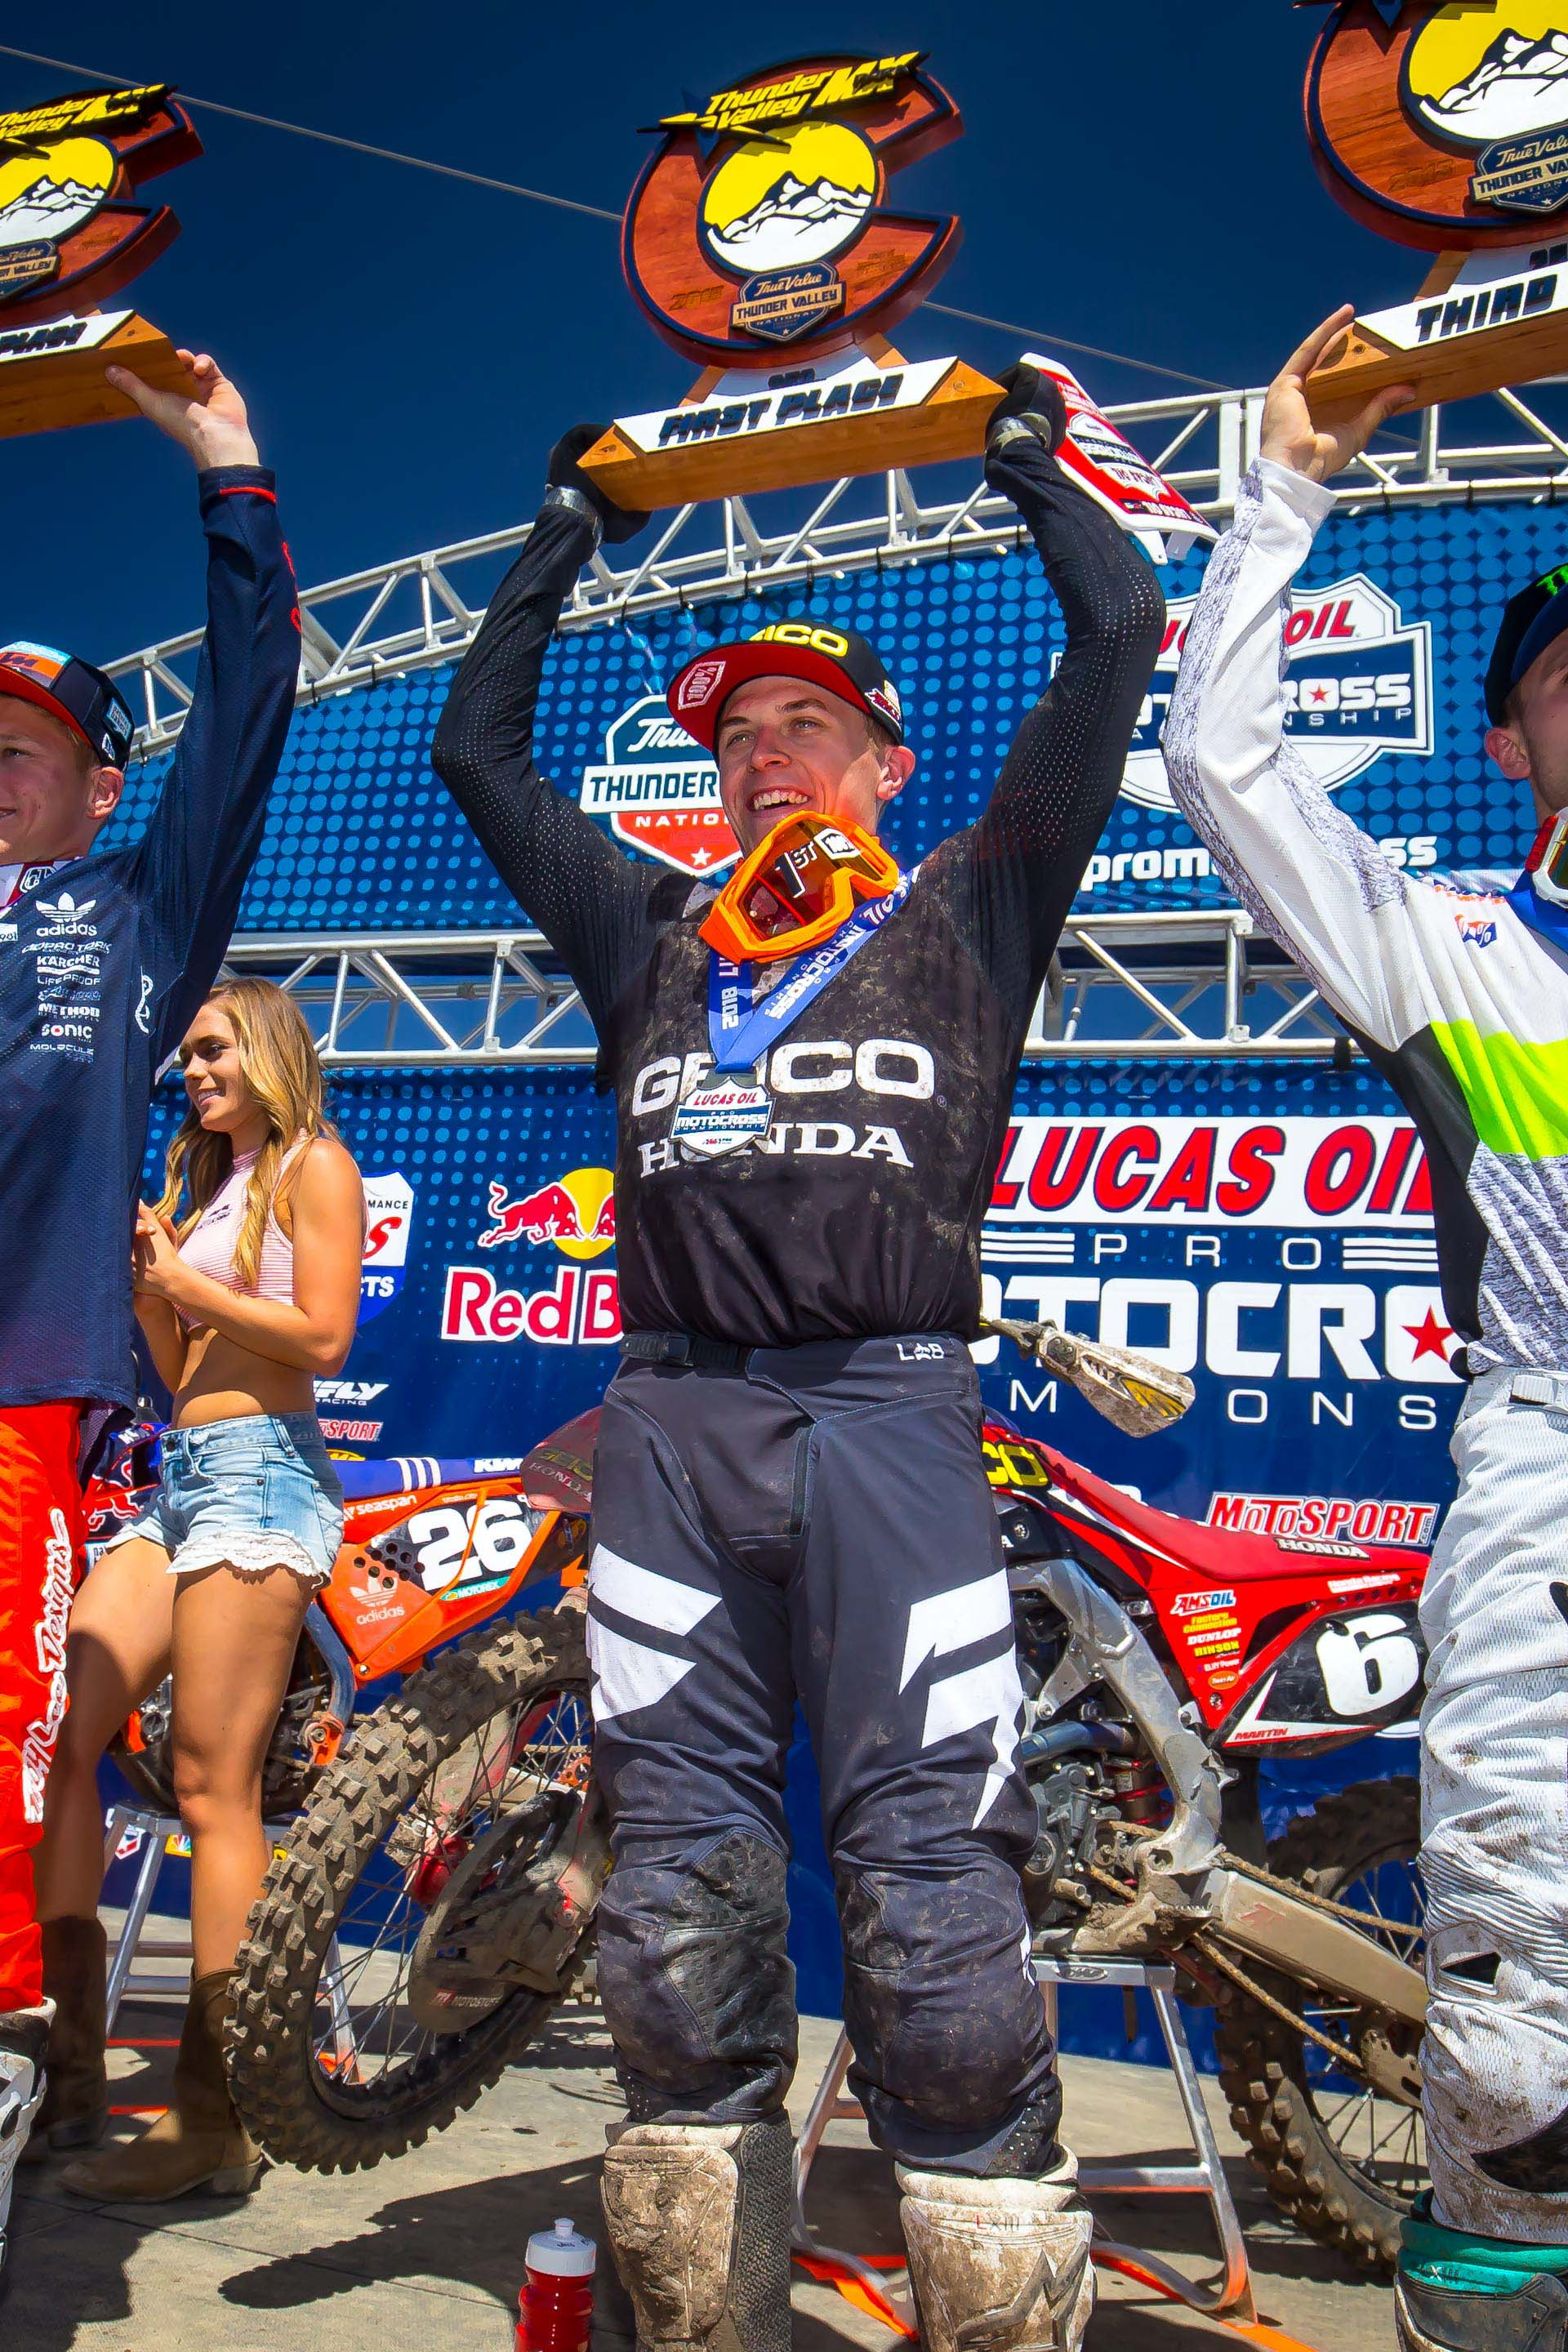 JEREMY MARTIN GRABS WIN, TAKES OVER POINTS LEAD AT THUNDER VALLEY